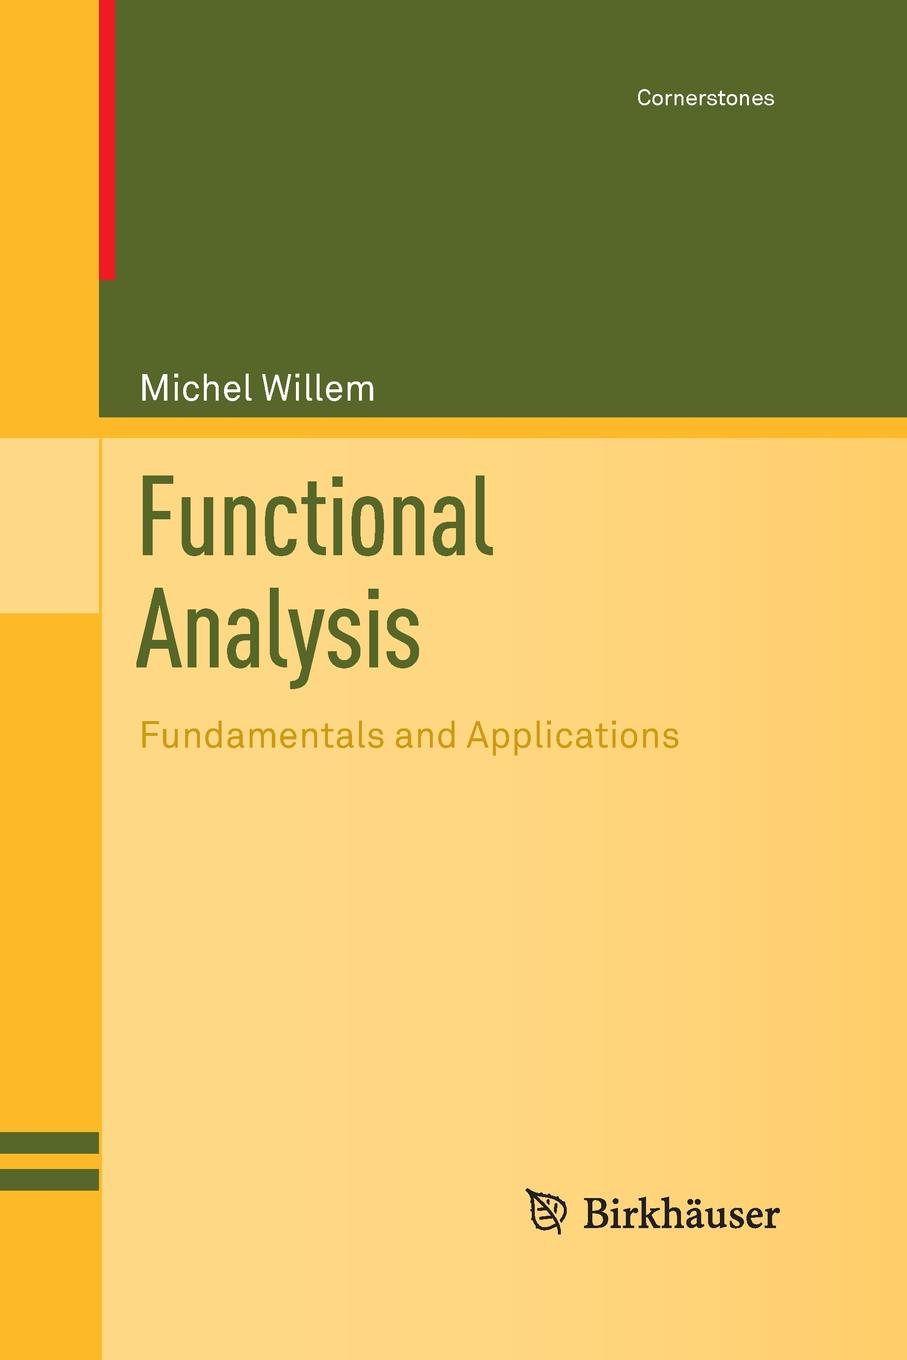 все цены на Michel Willem Functional Analysis. Fundamentals and Applications онлайн